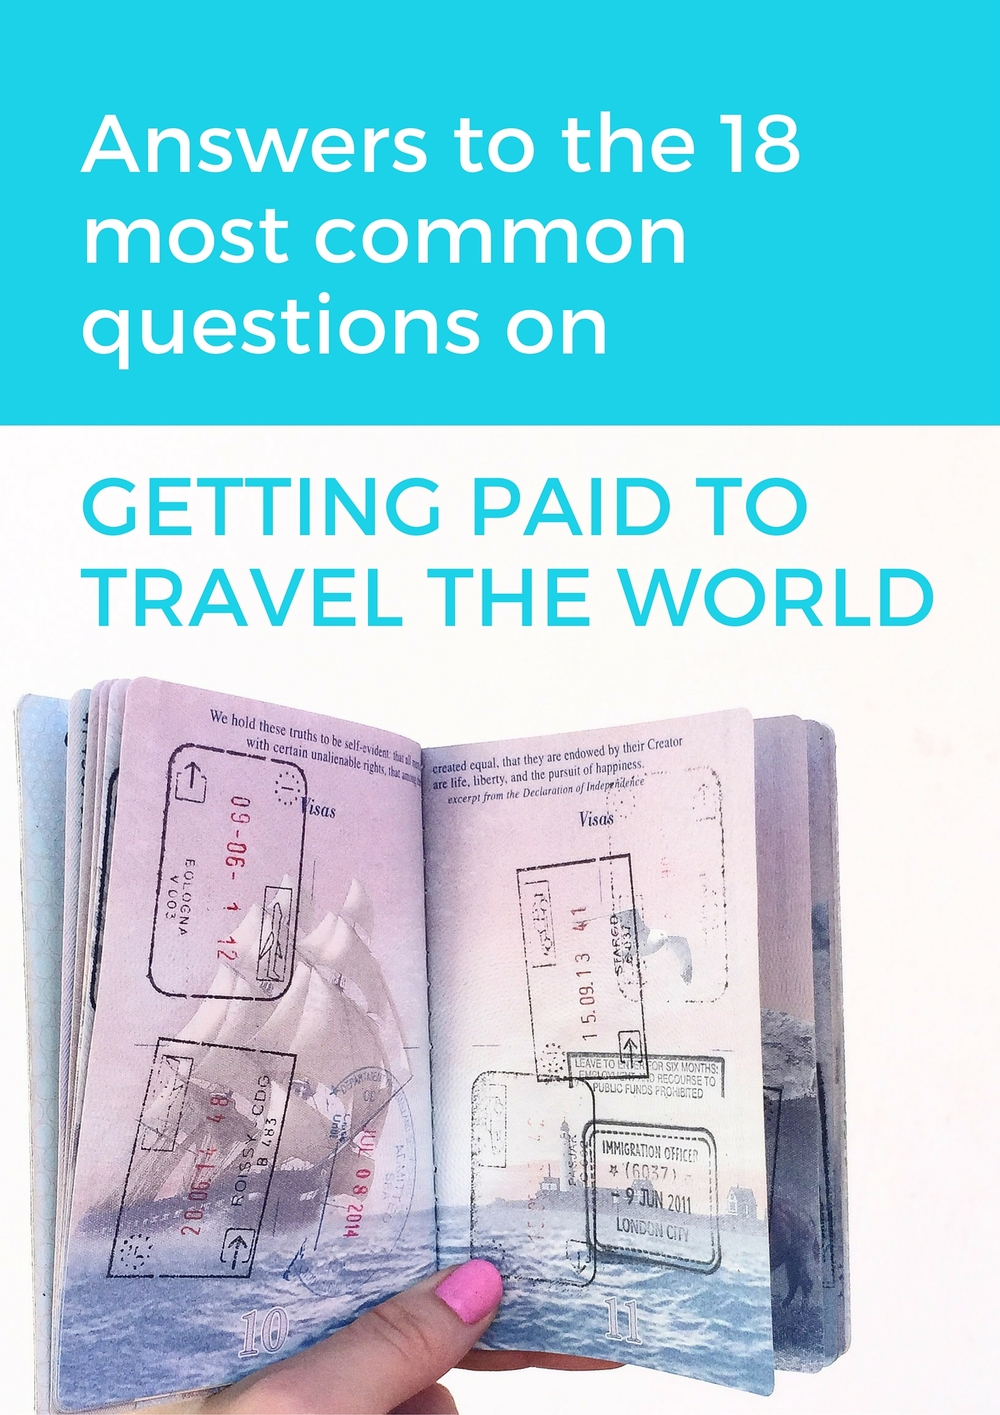 Want to get paid to travel? Make sure you know the answers to the most common questions on working while you travel!